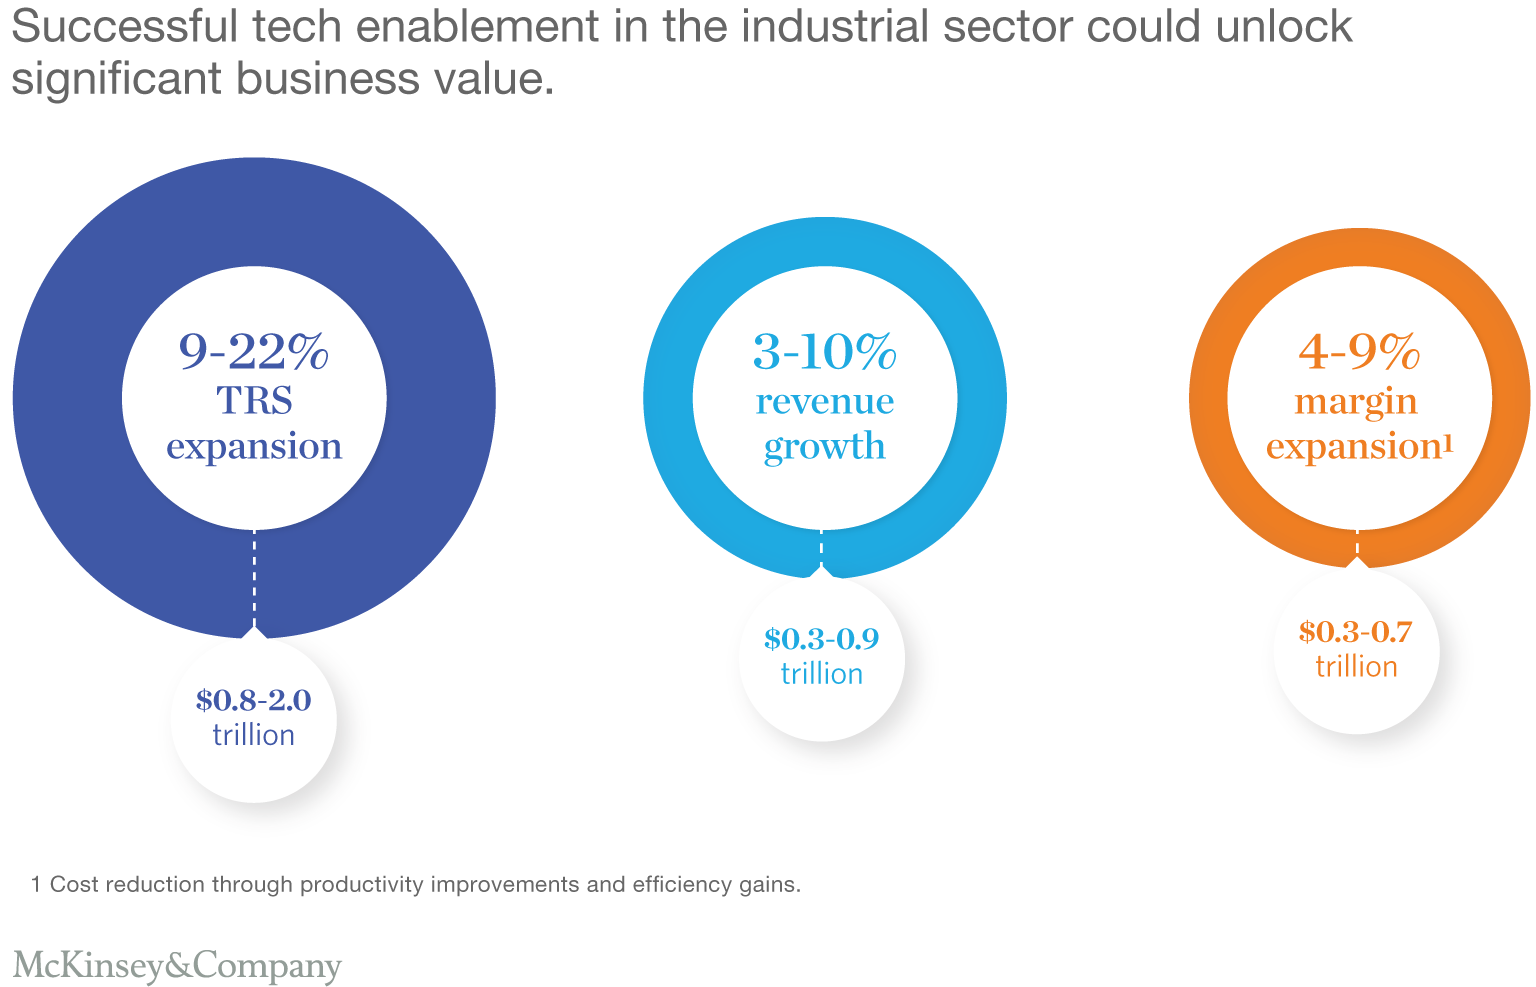 Successful tech enablement in the industrial sector could unlock significant business value.